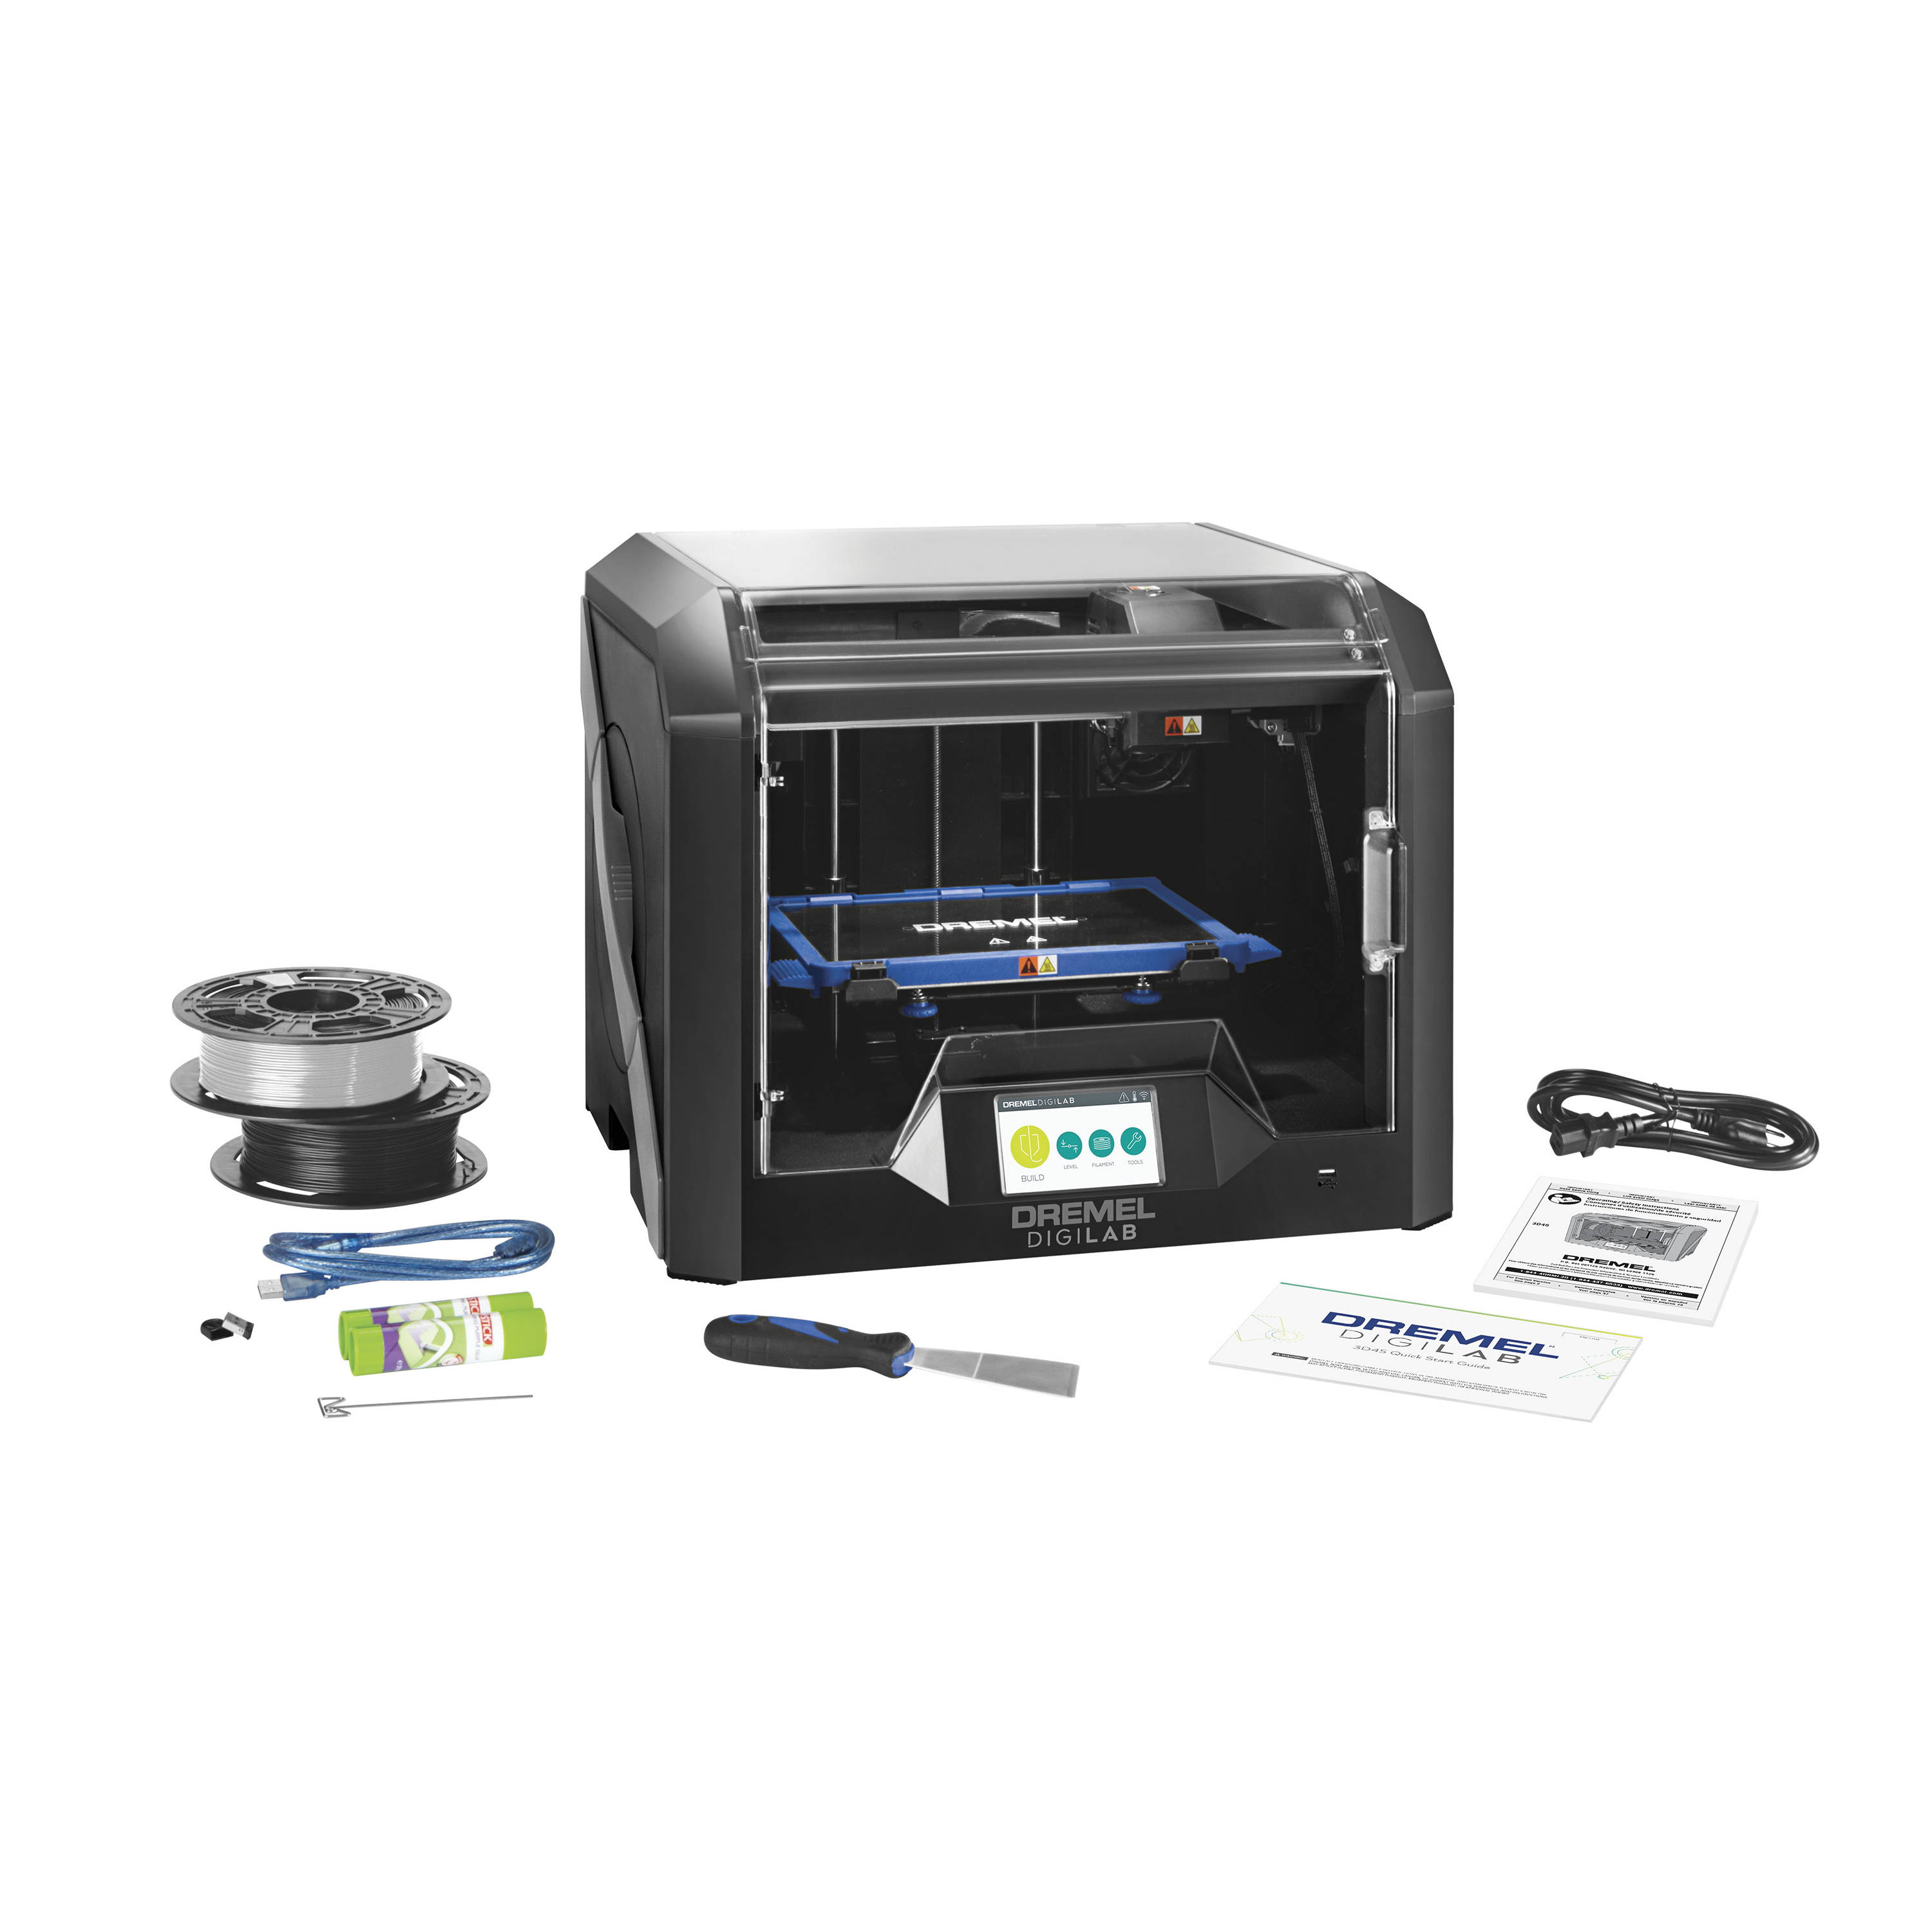 Image of 3D45-01 3D printer kit with all included contents